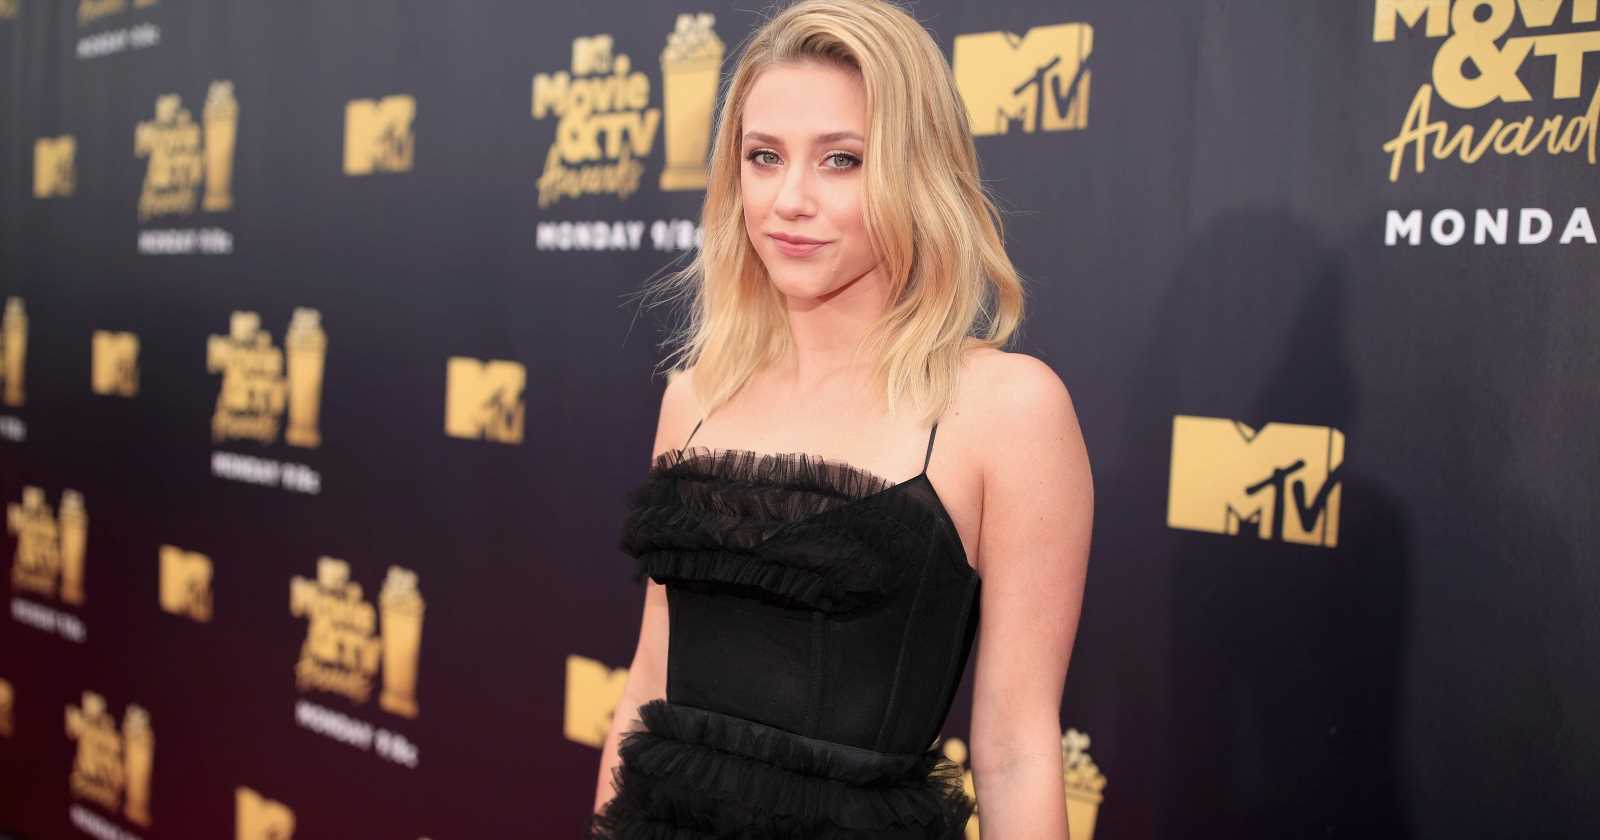 Lili Reinhart warns travelers about fake Uber drivers after her own airport experience